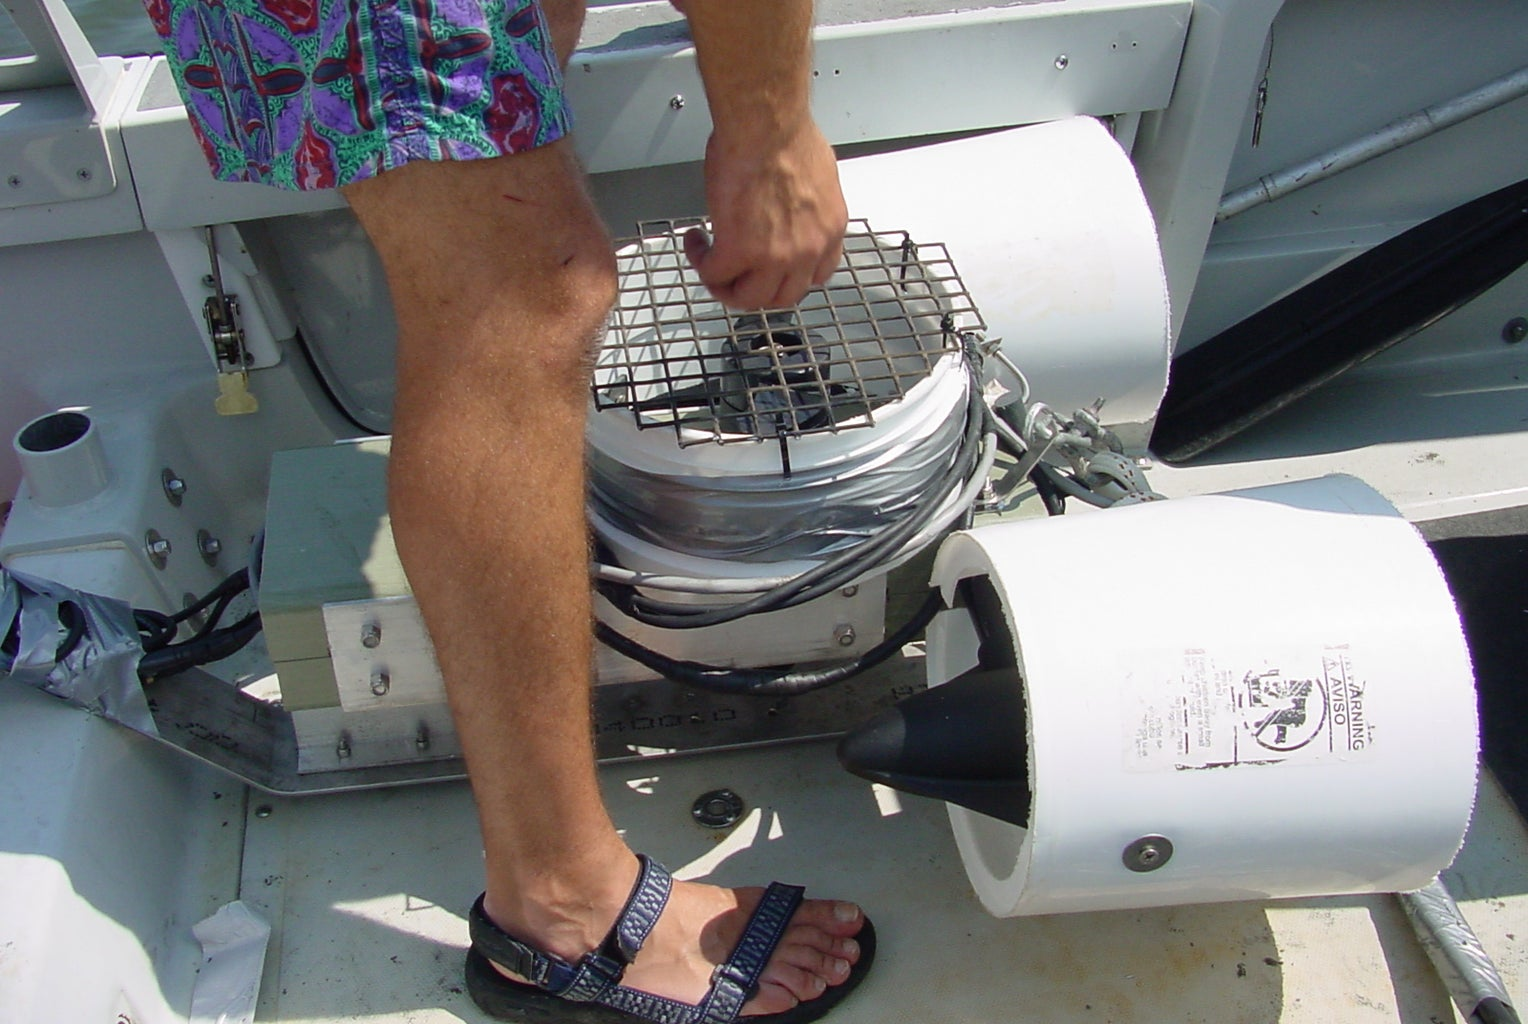 SemiAutonomous Submersible Robot for Underwater Research